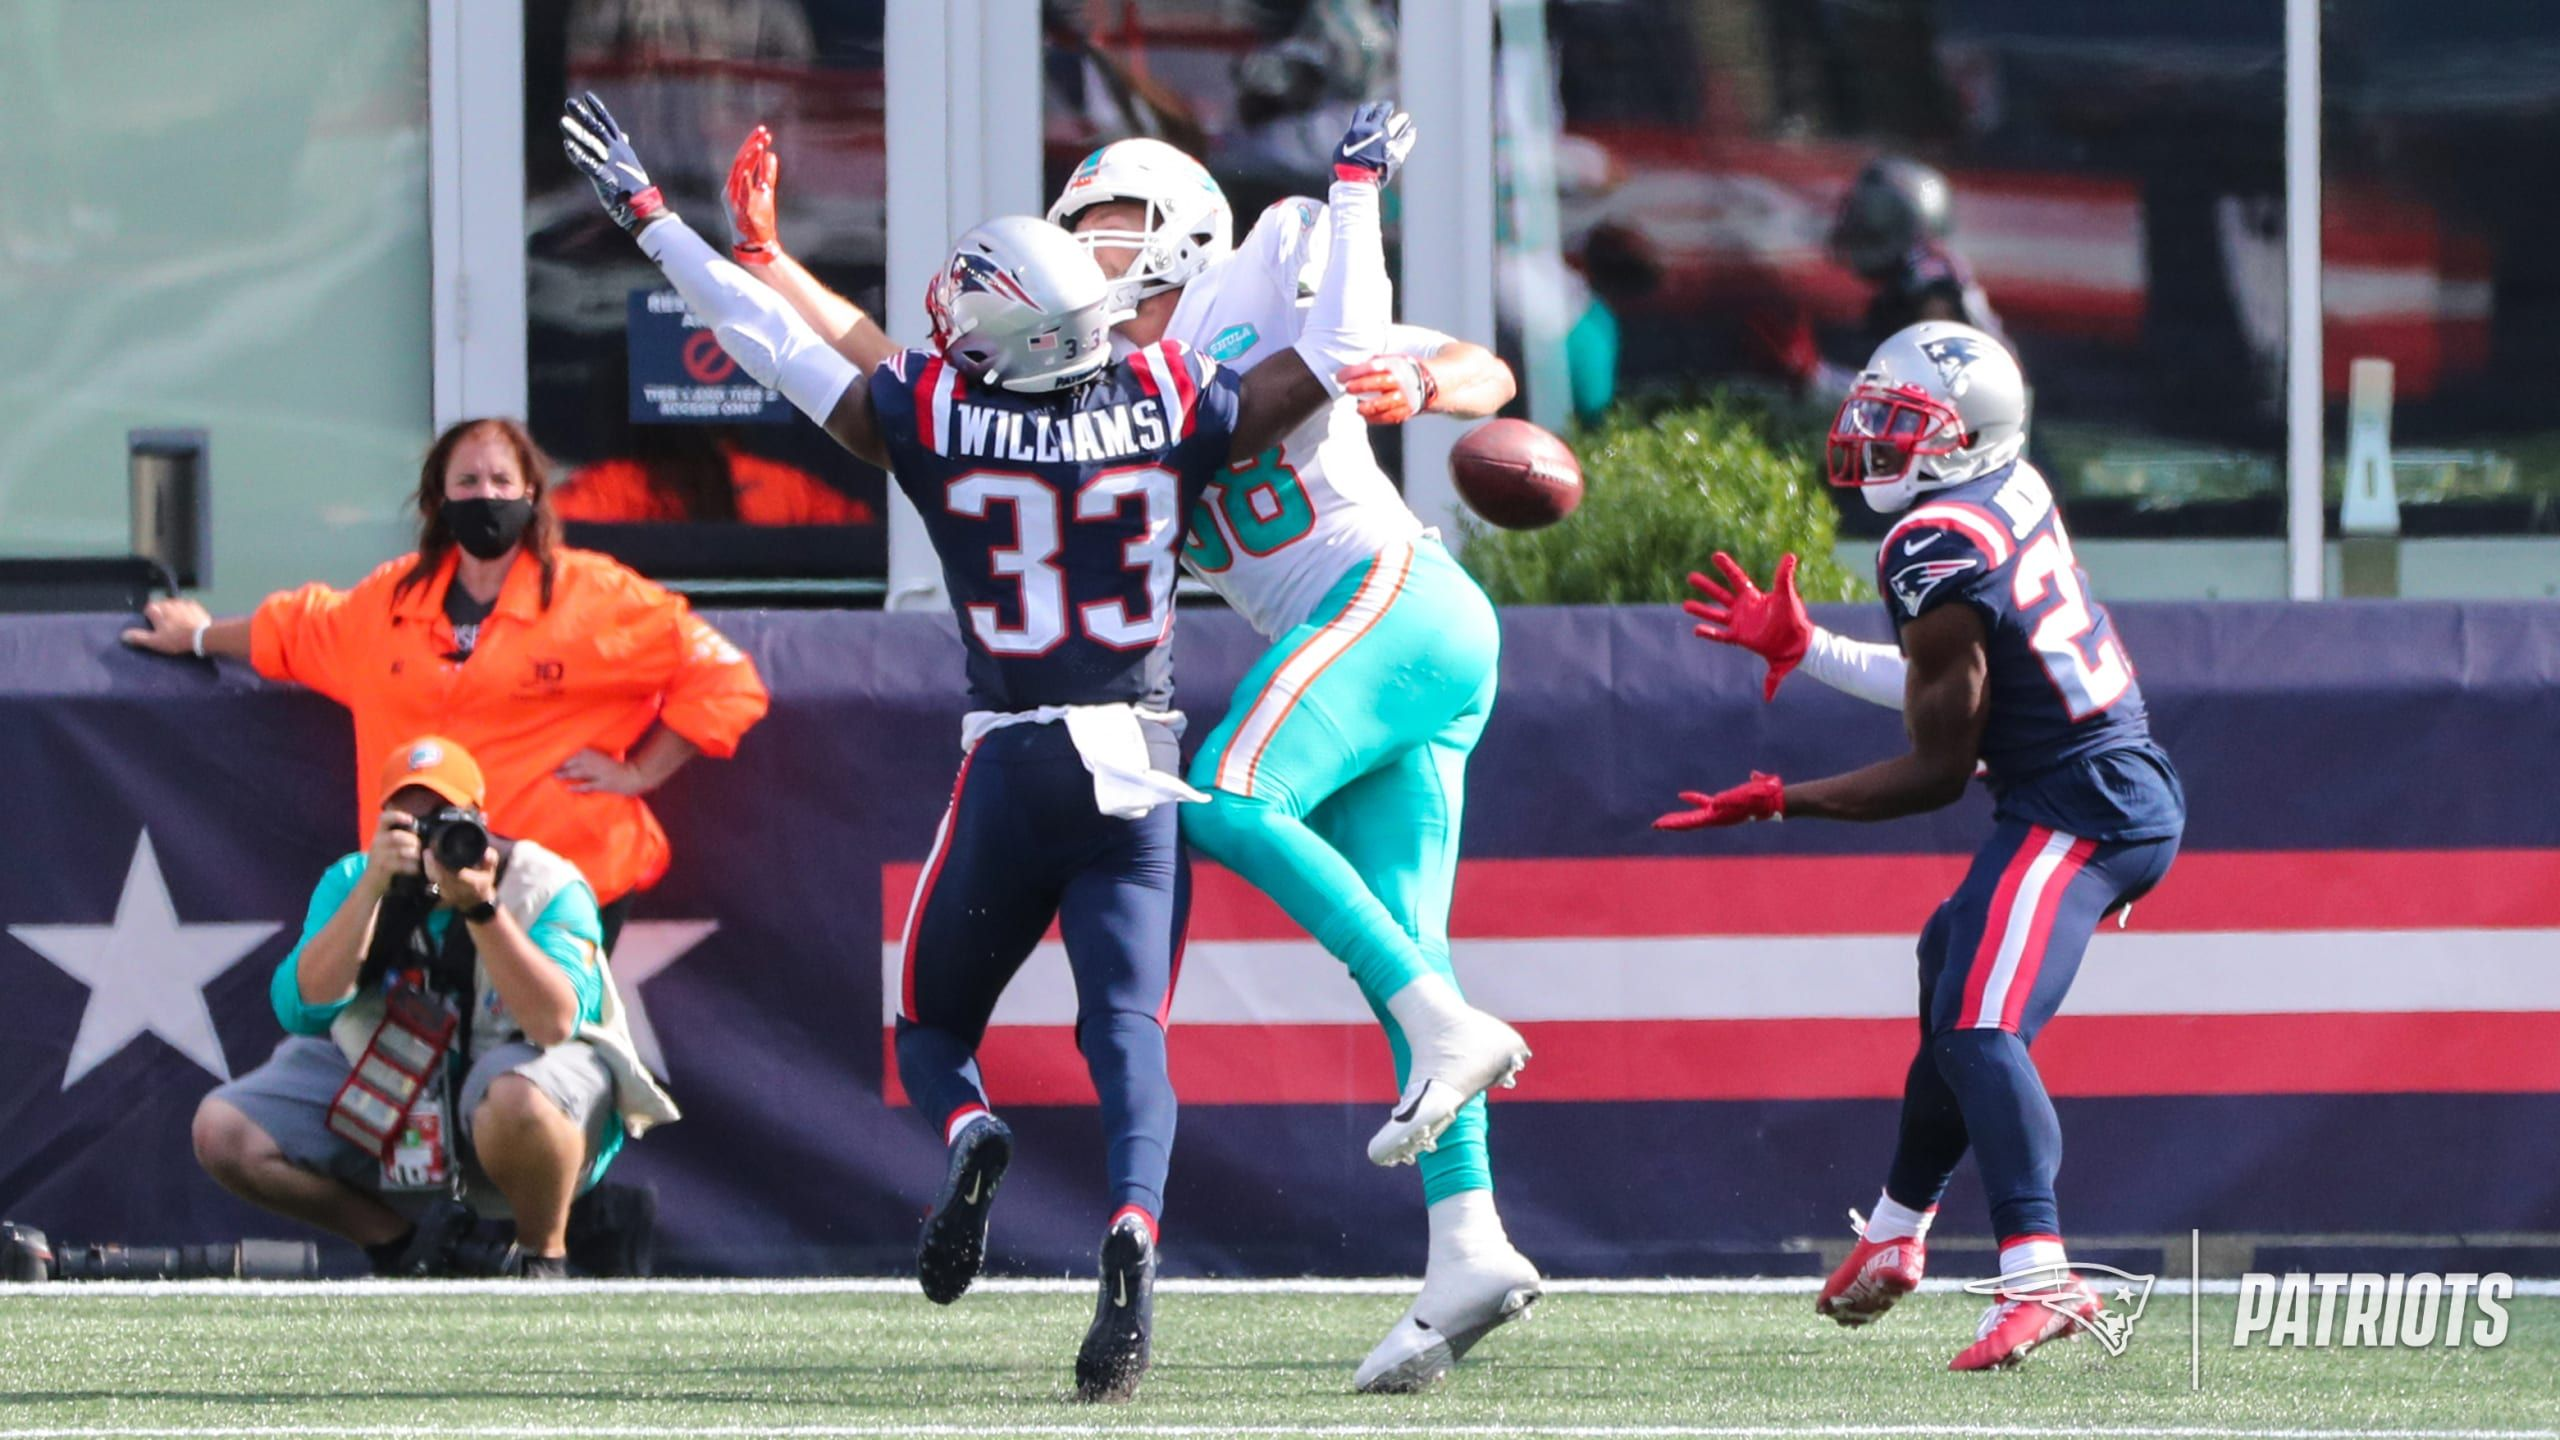 Top 5 Photos From Patriots Vs Dolphins Presented By Carmax In 2020 Patriots Patriots Vs Dolphins Photo